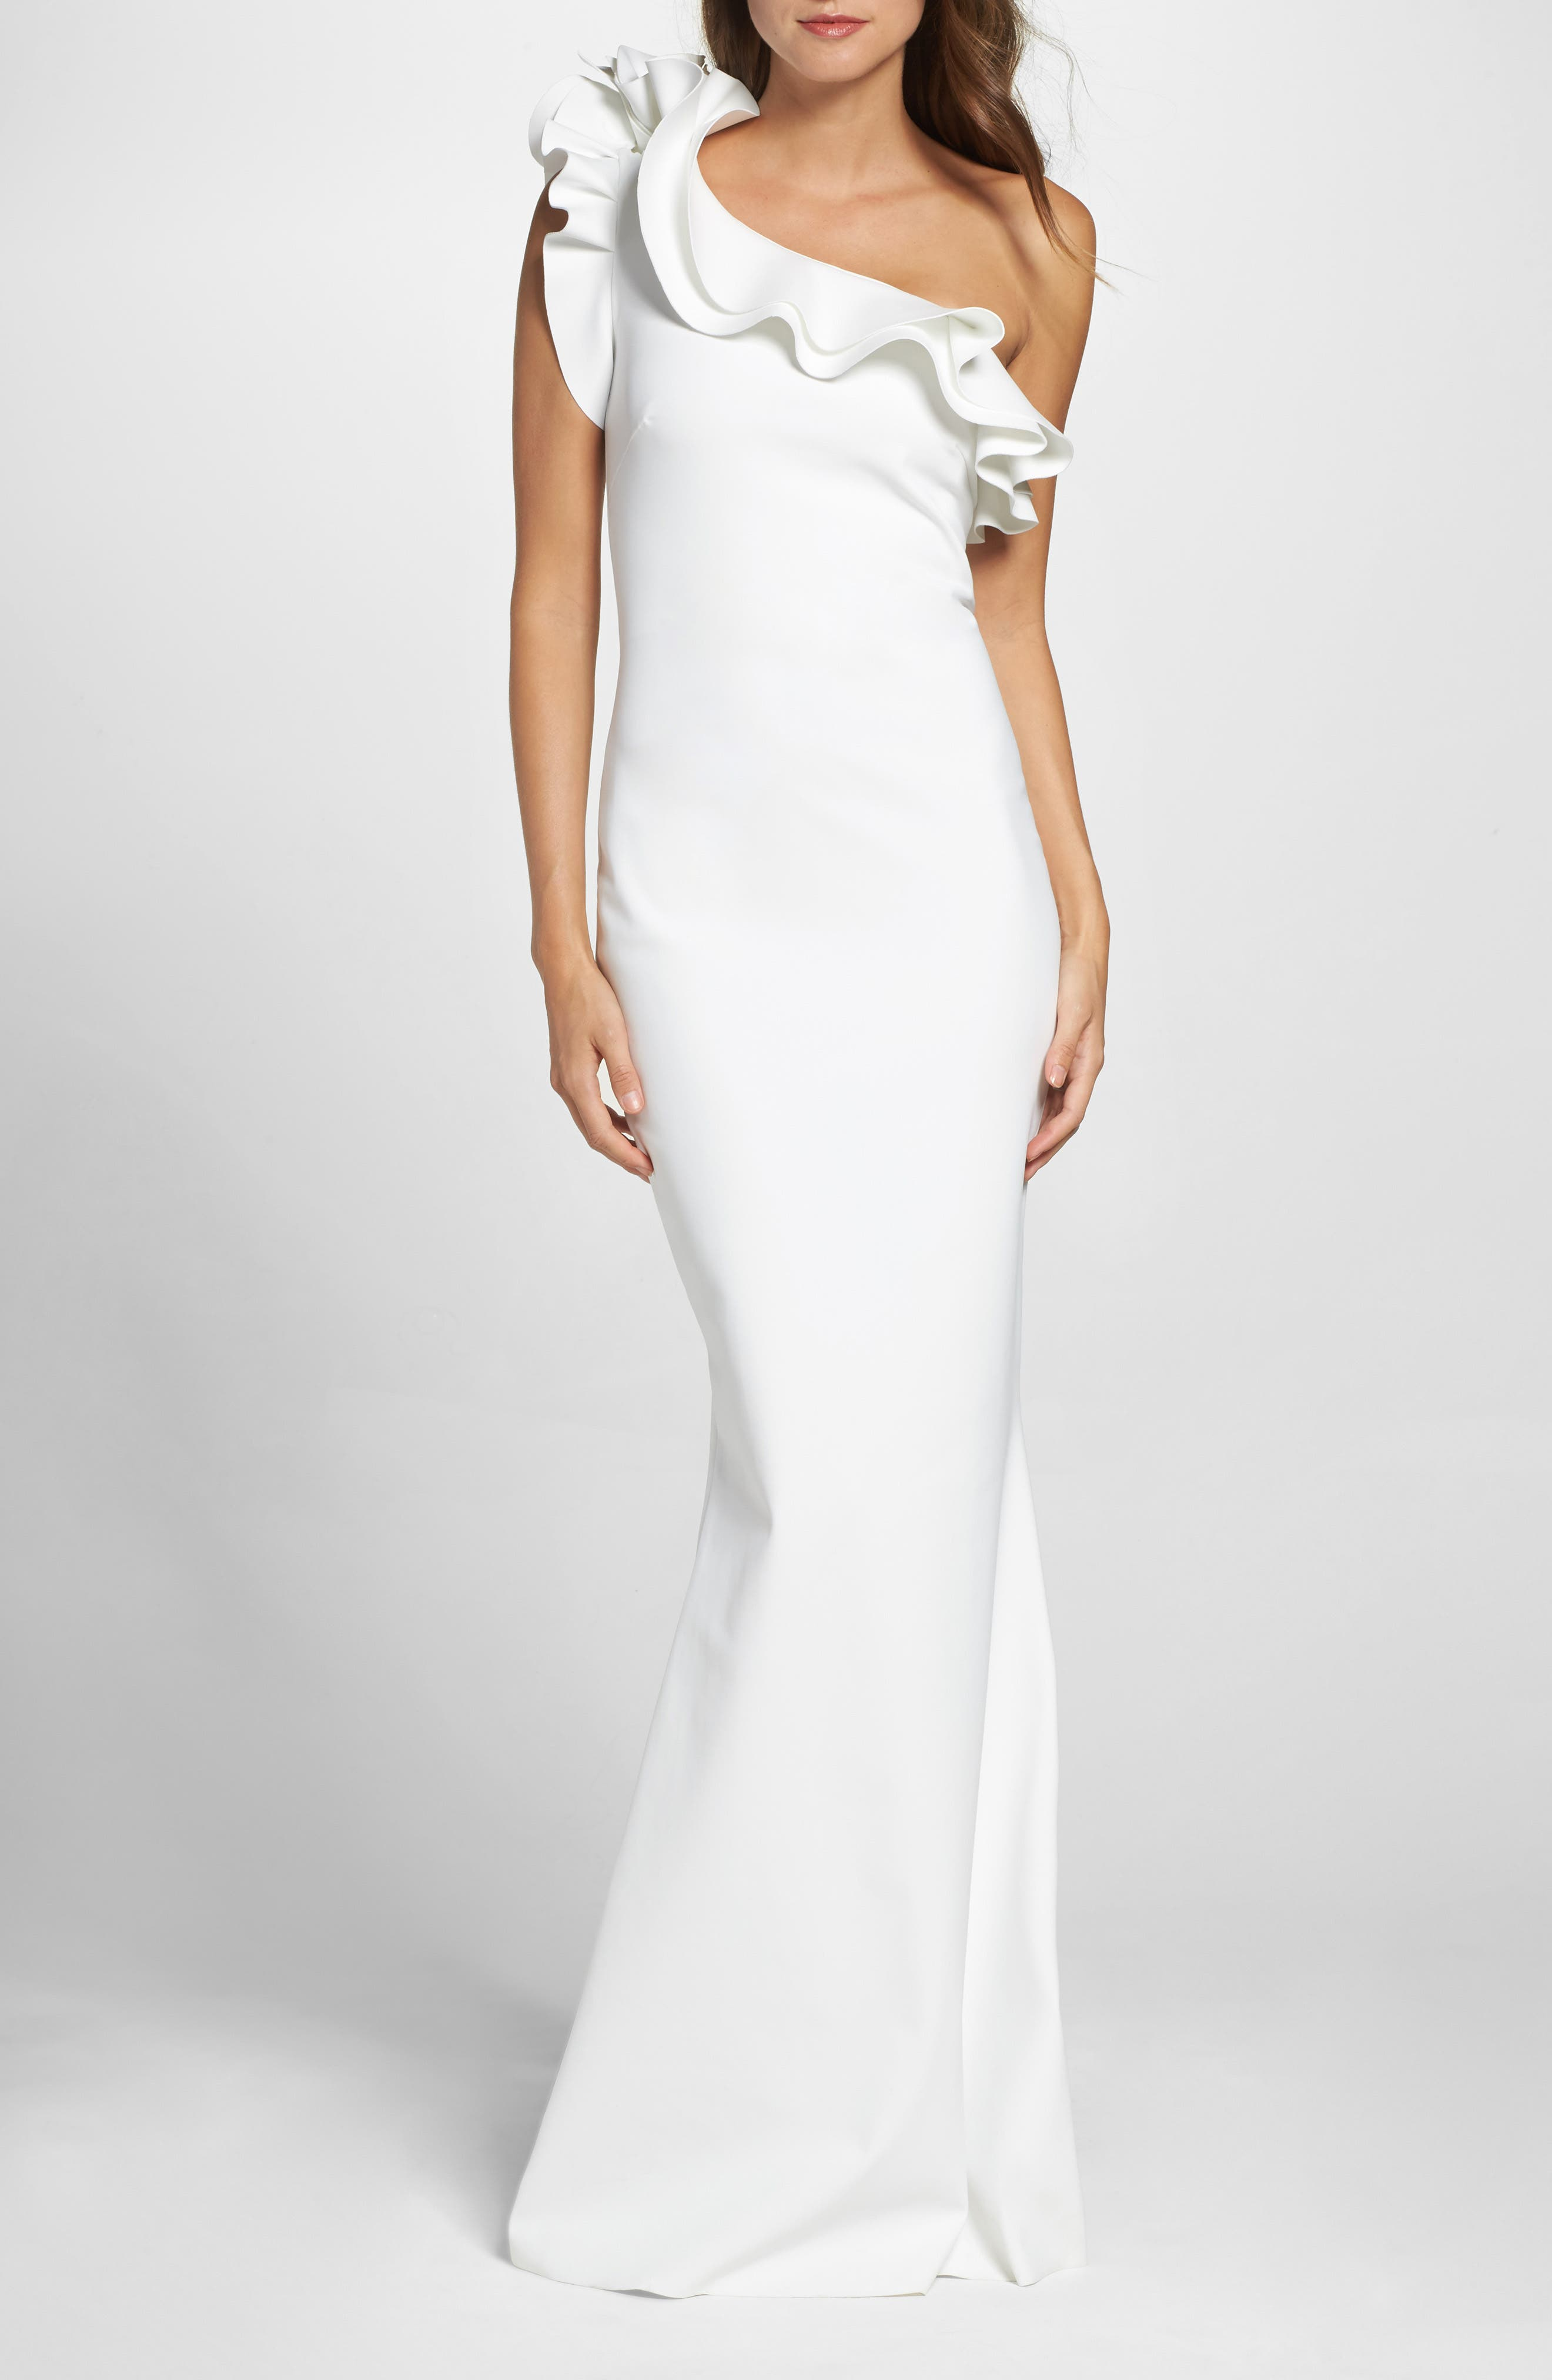 Elisir Ruffle One-Shoulder Gown,                             Main thumbnail 1, color,                             100